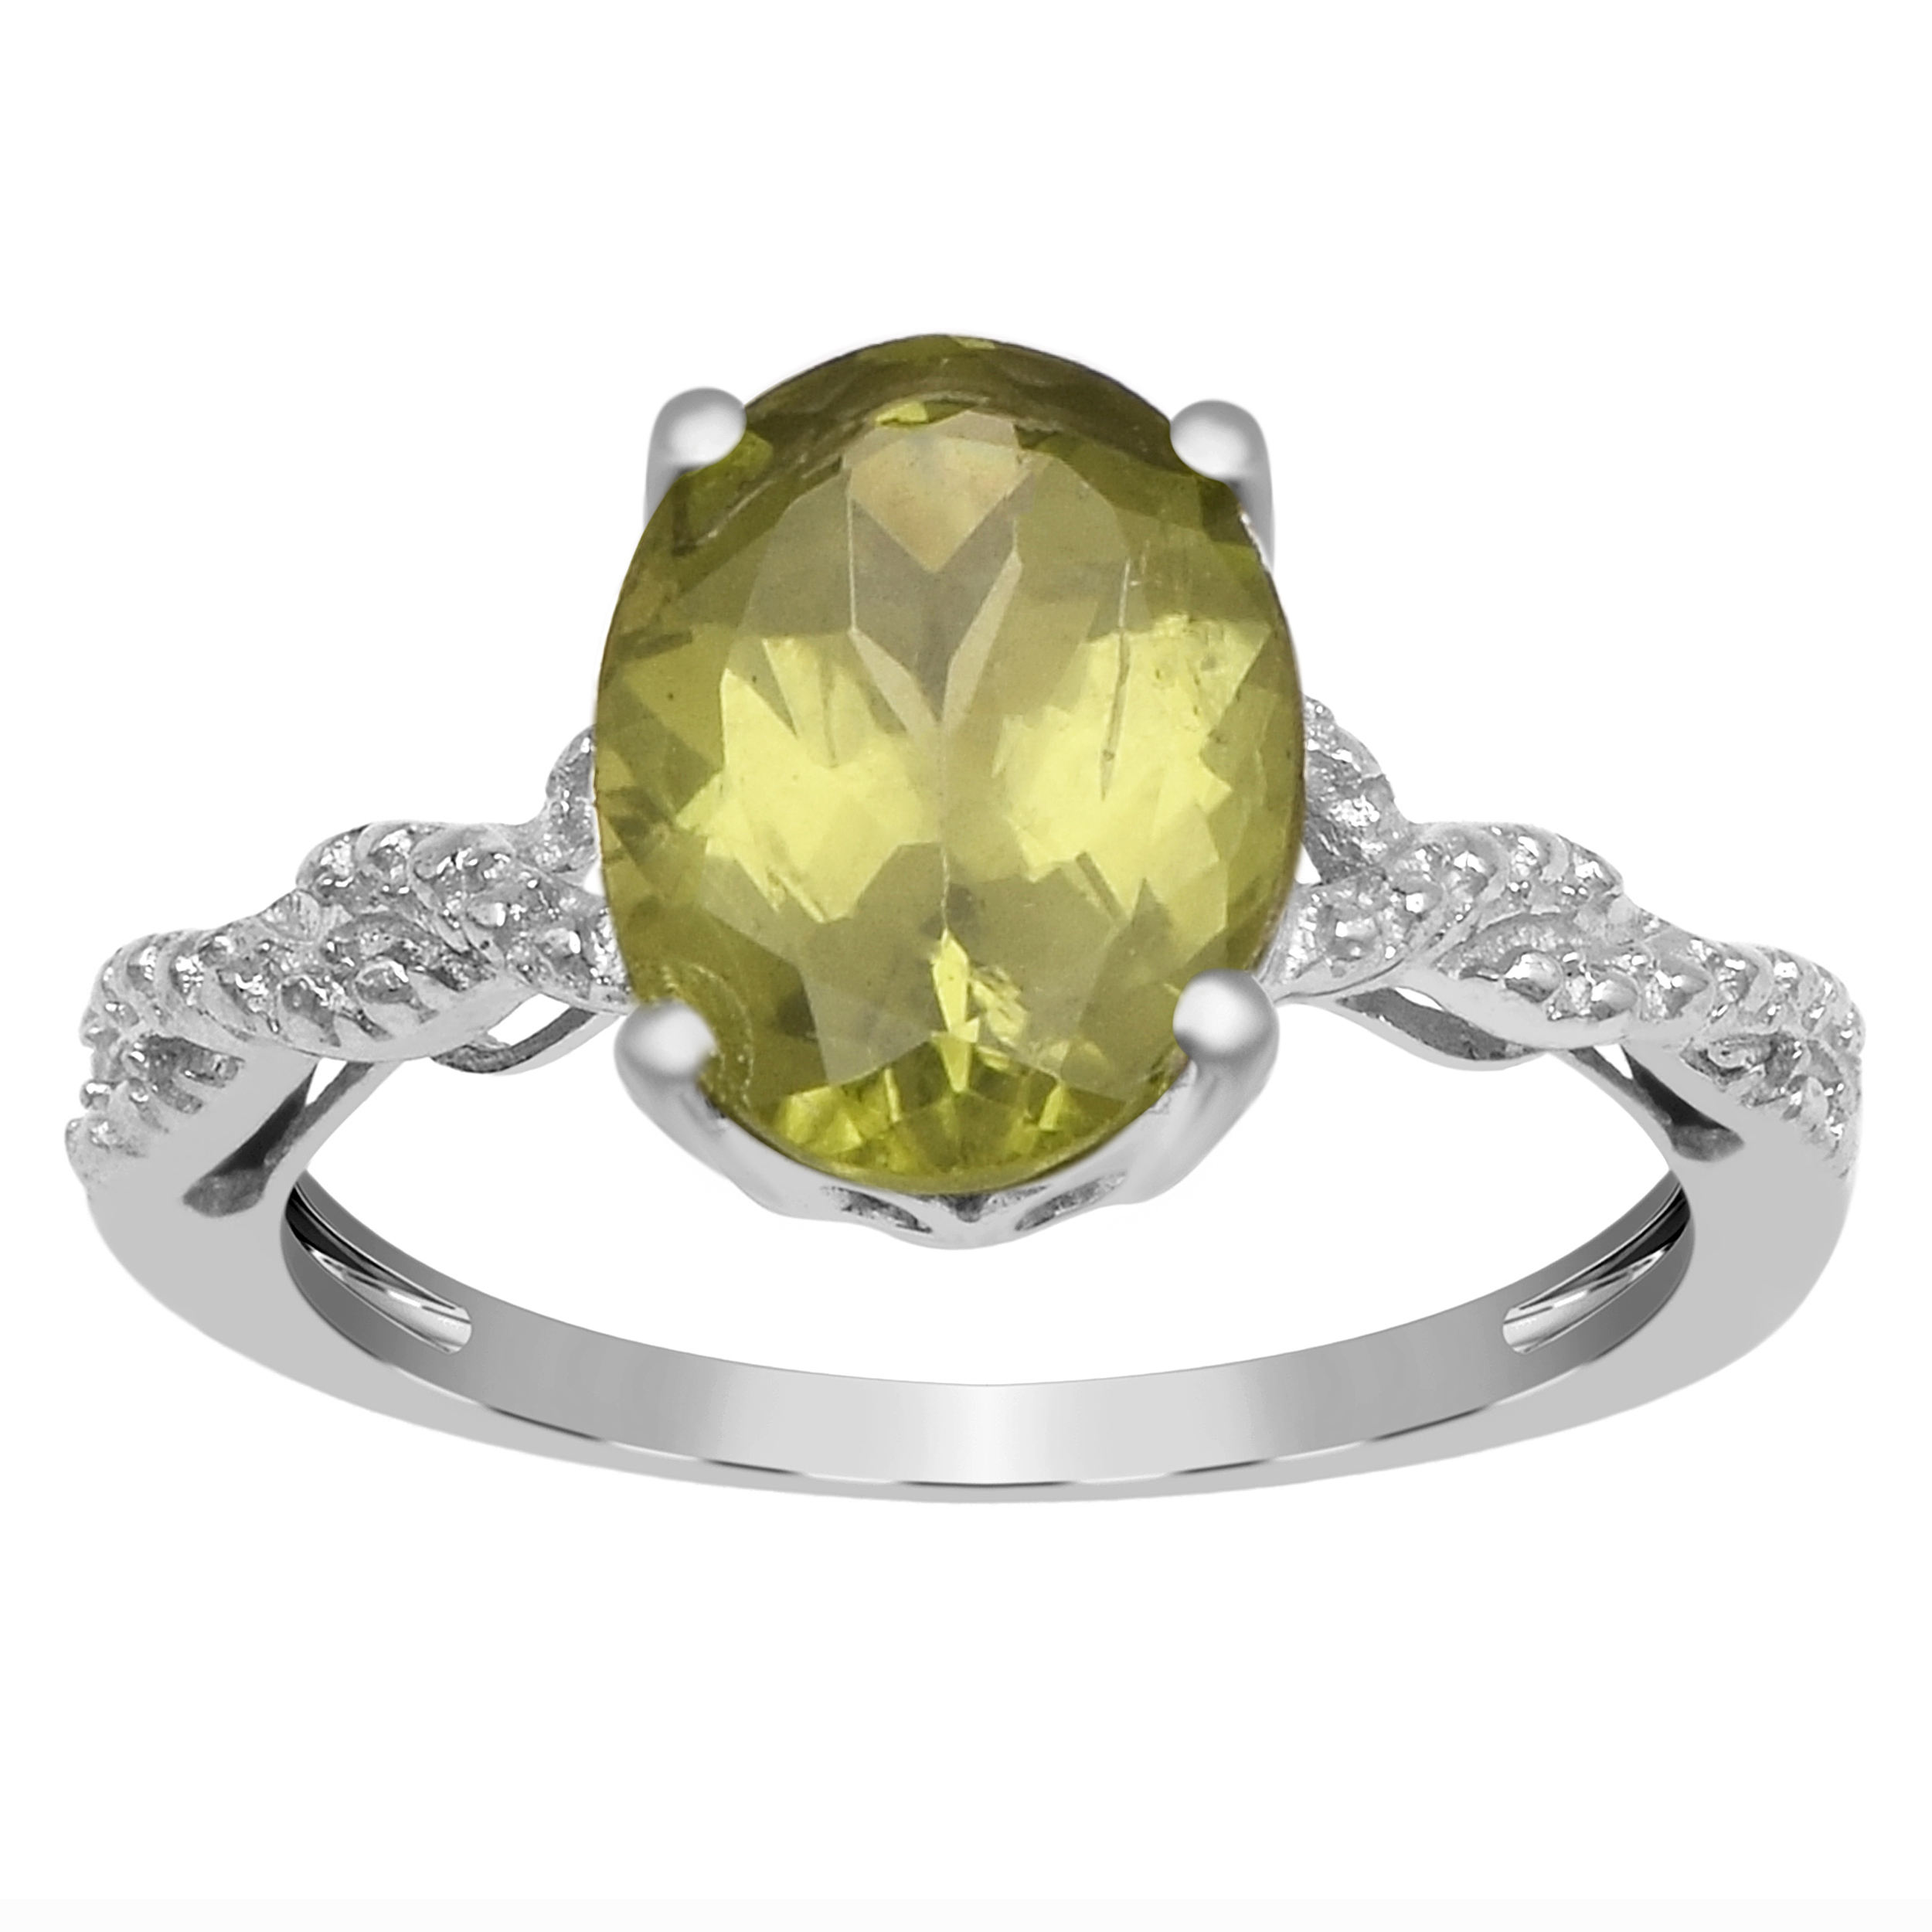 Solitaire Cut 1.00 Ctw Peridot Gemstone 925 Sterling Silver Women Promise Ring